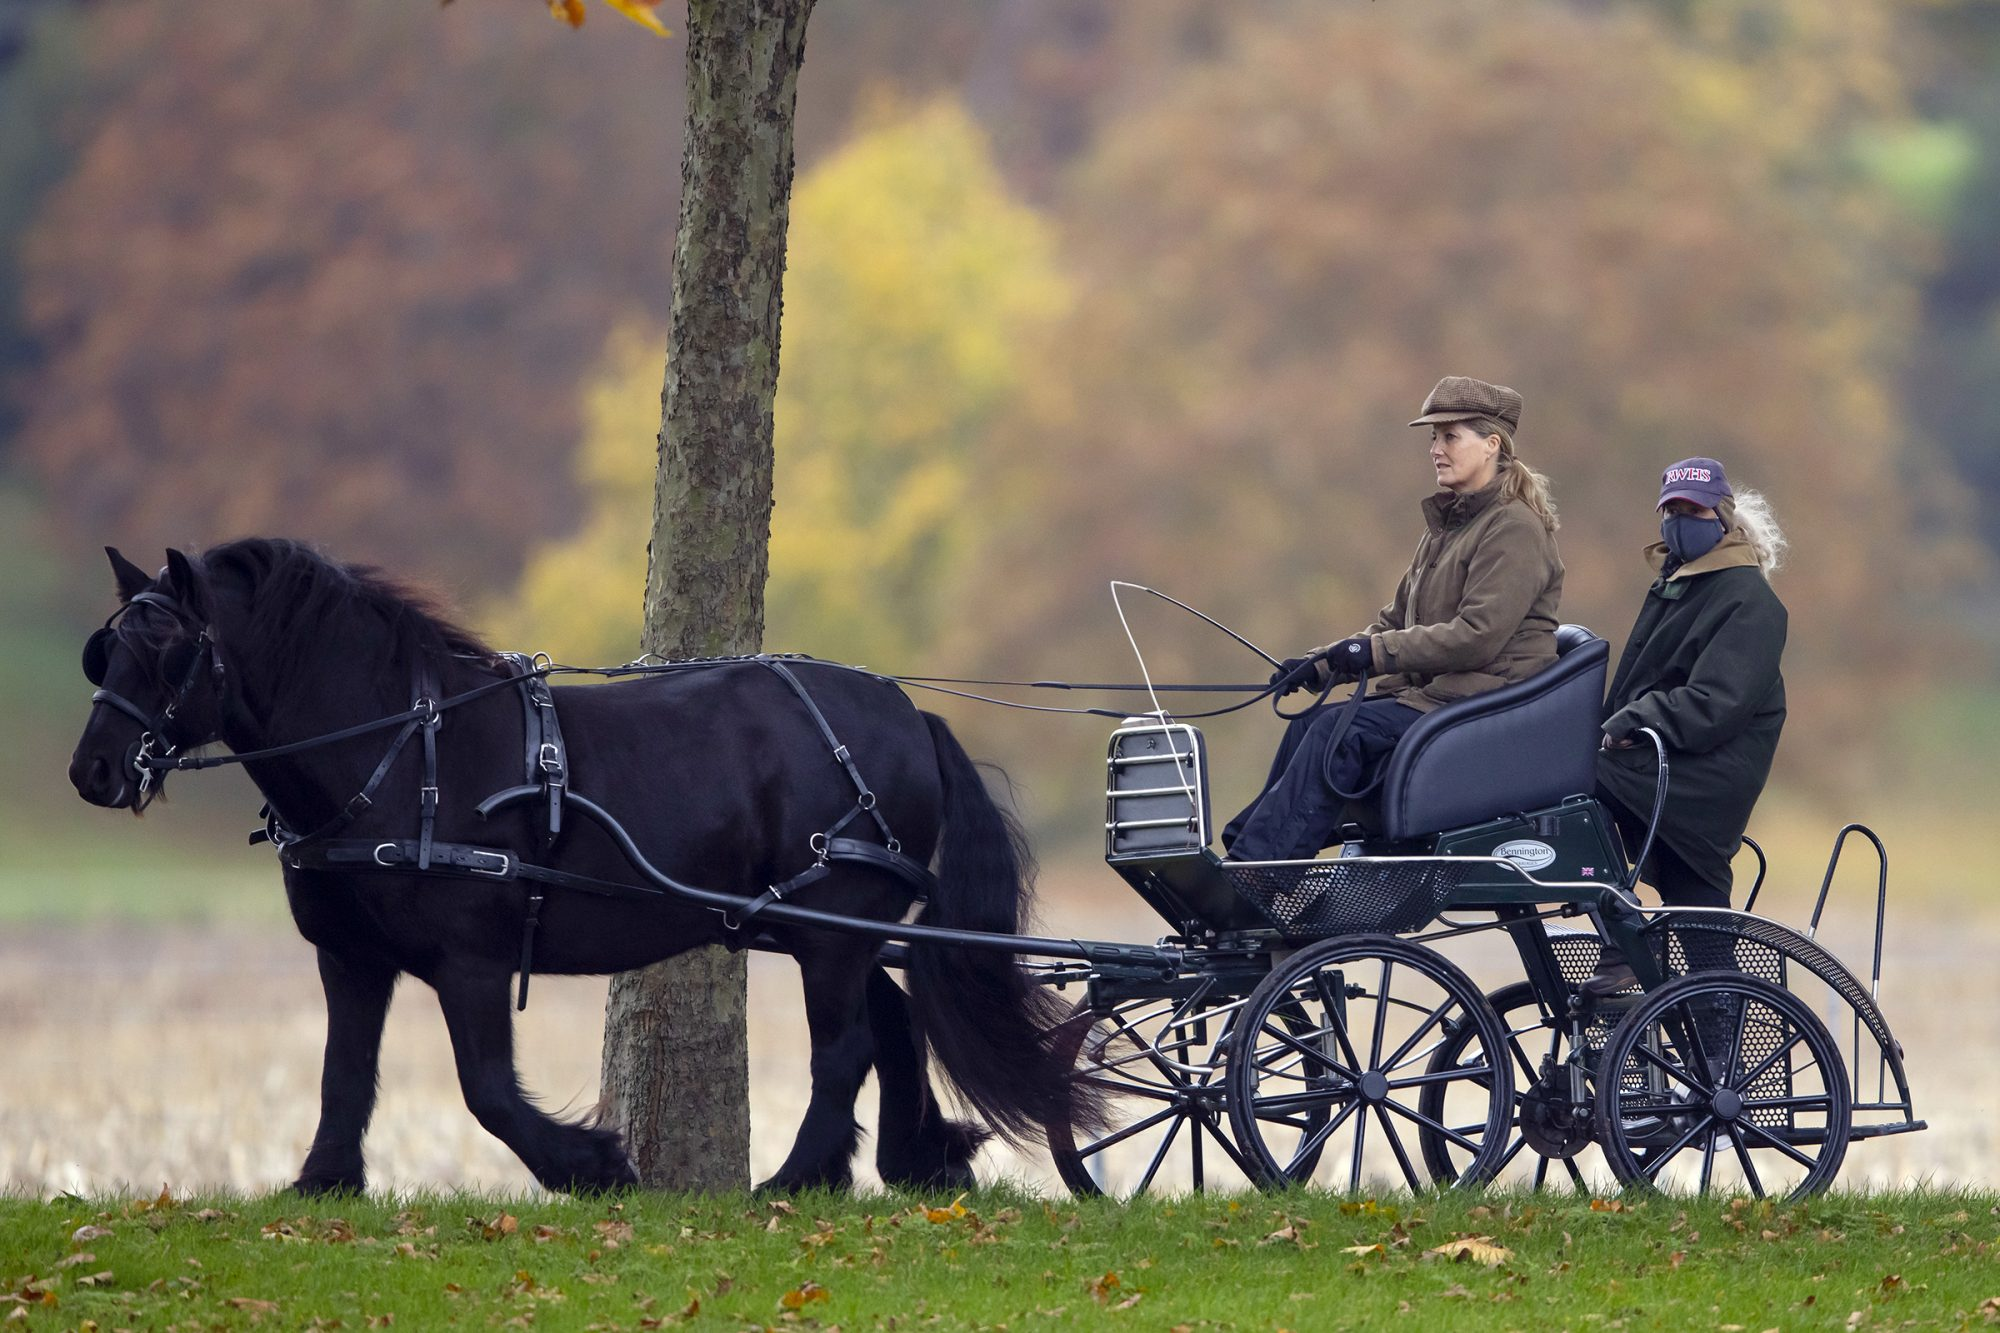 Sophie Countess Of Wessex driving her carriage with her Groom, Windsor Castle, UK - 24 Oct 2020